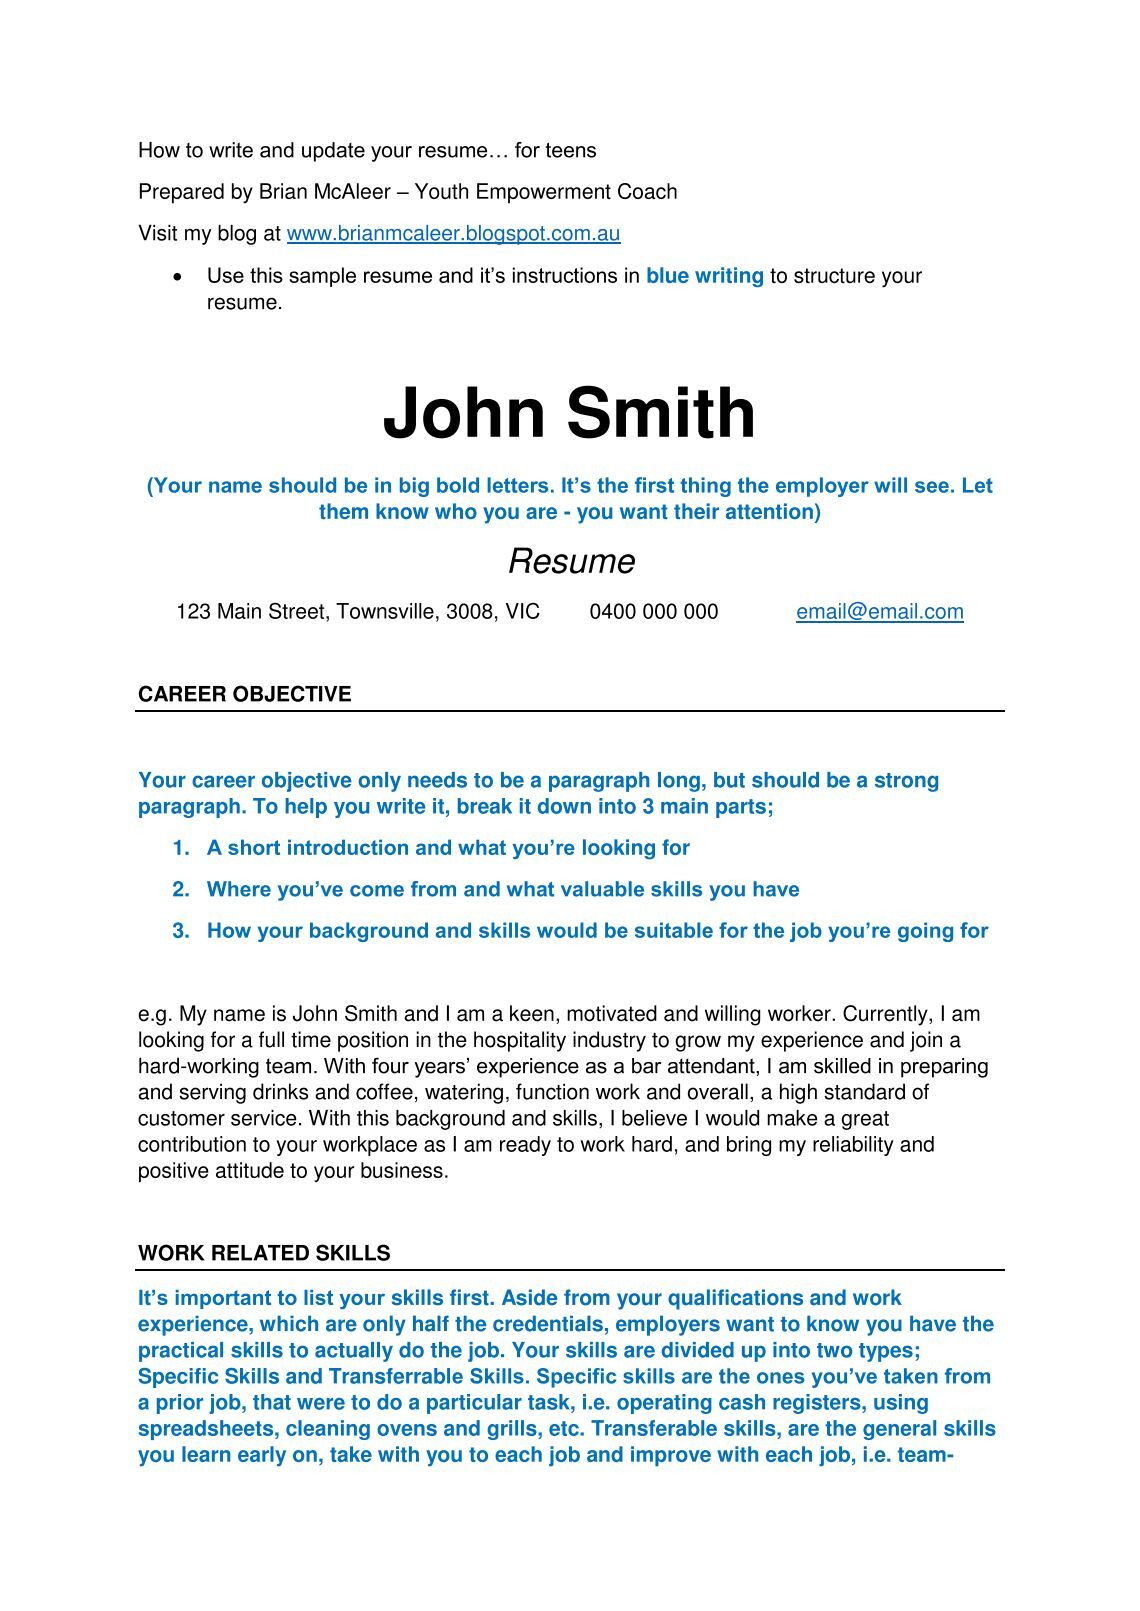 performing arts resume free magazines from mcaleerbrian computer science resume examples with resume sample for customer